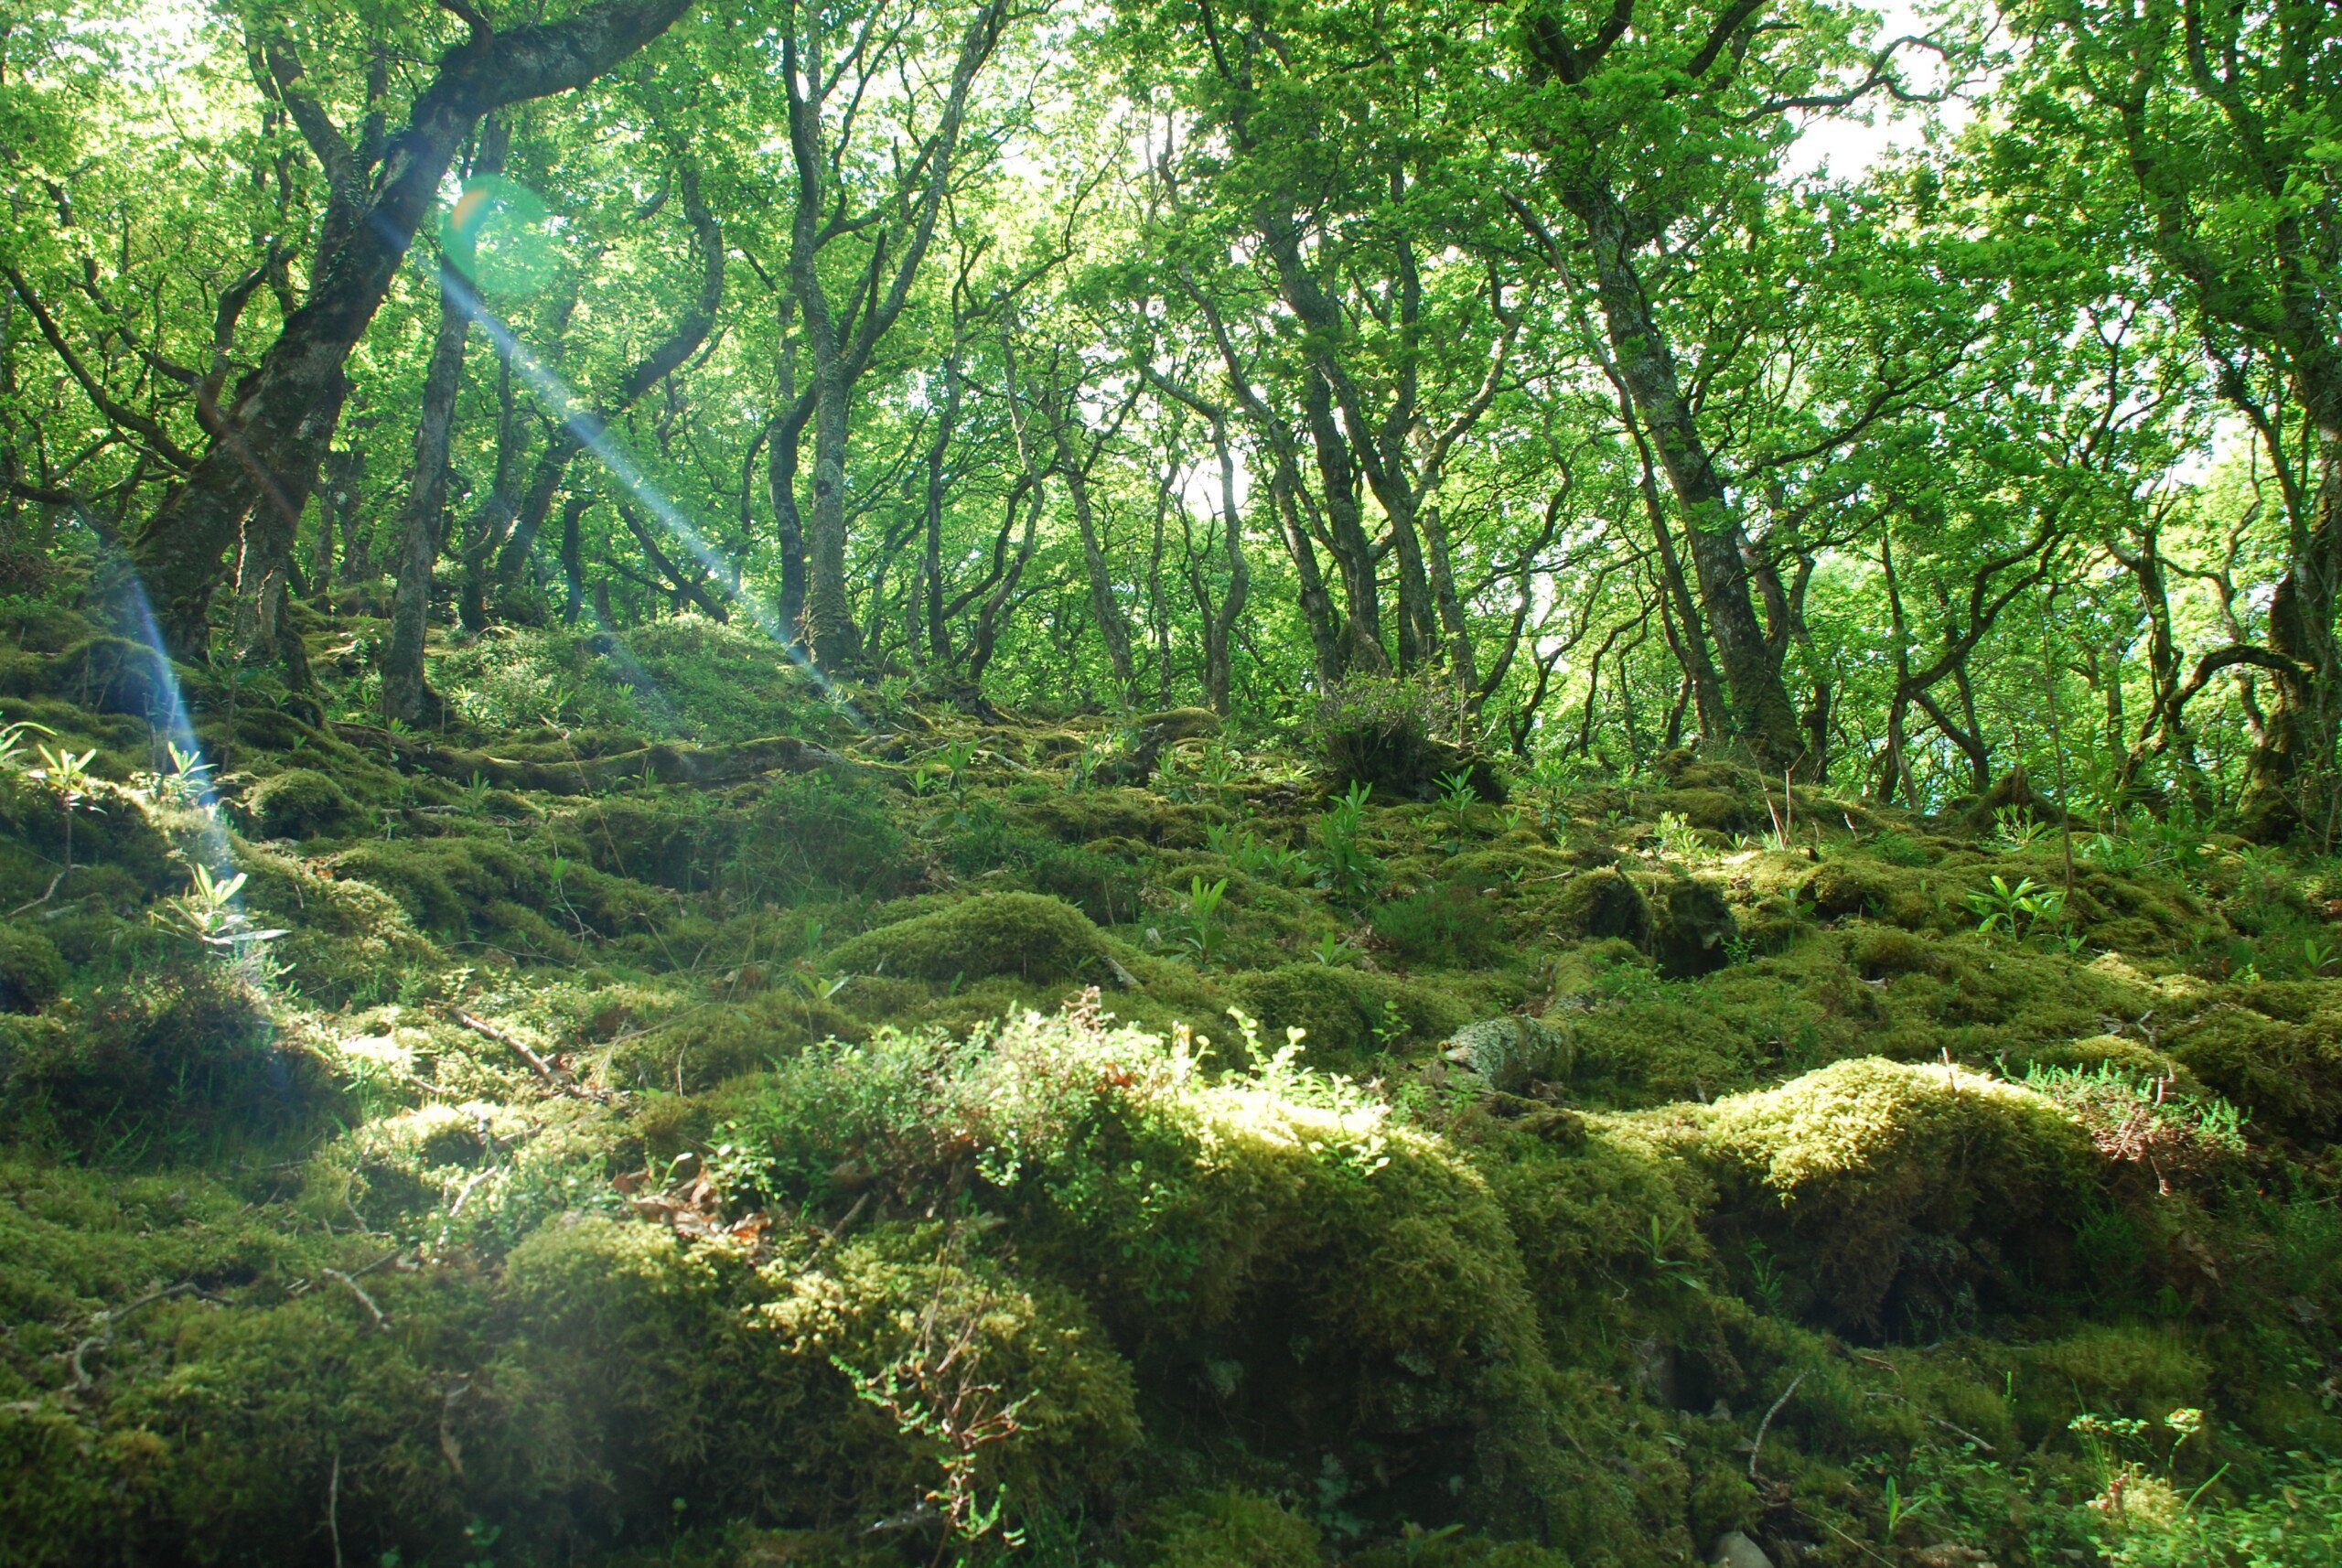 Woodland in Exmoor with shafts of sunlight streaming through the canopy